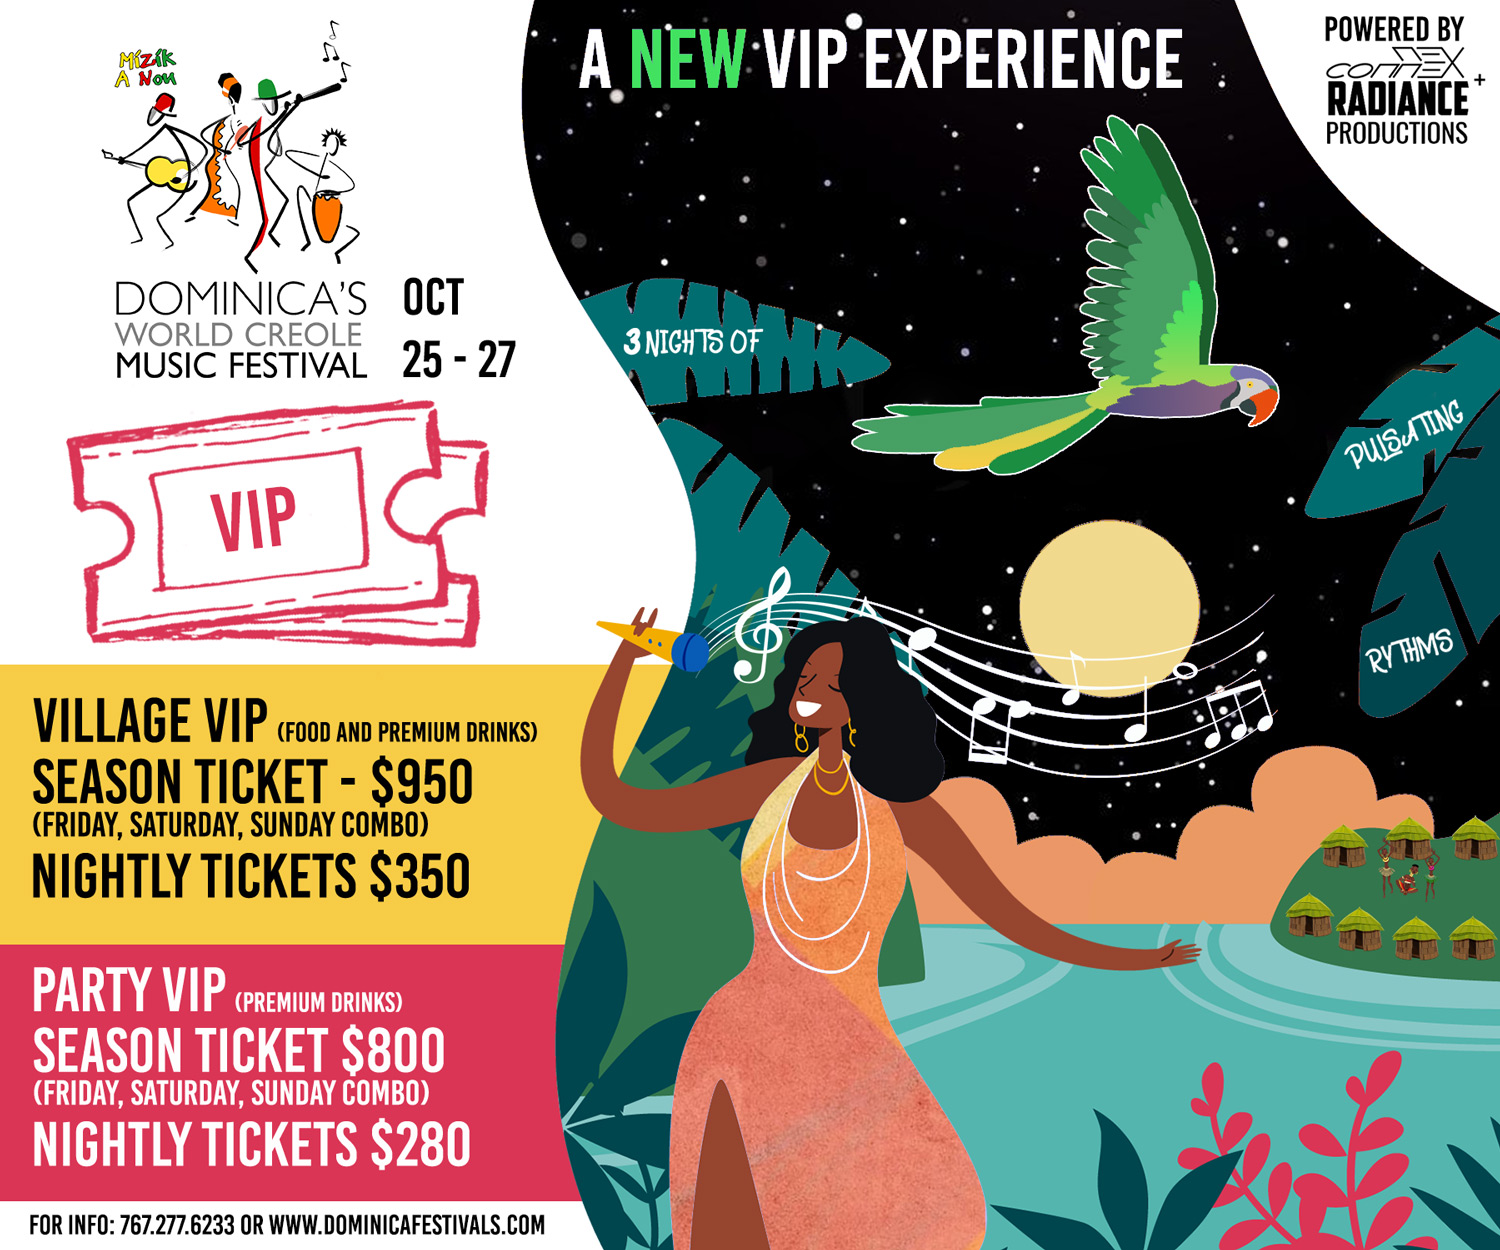 Party VIP - Night 1 (World Creole Music Festival 2019) - First In Line